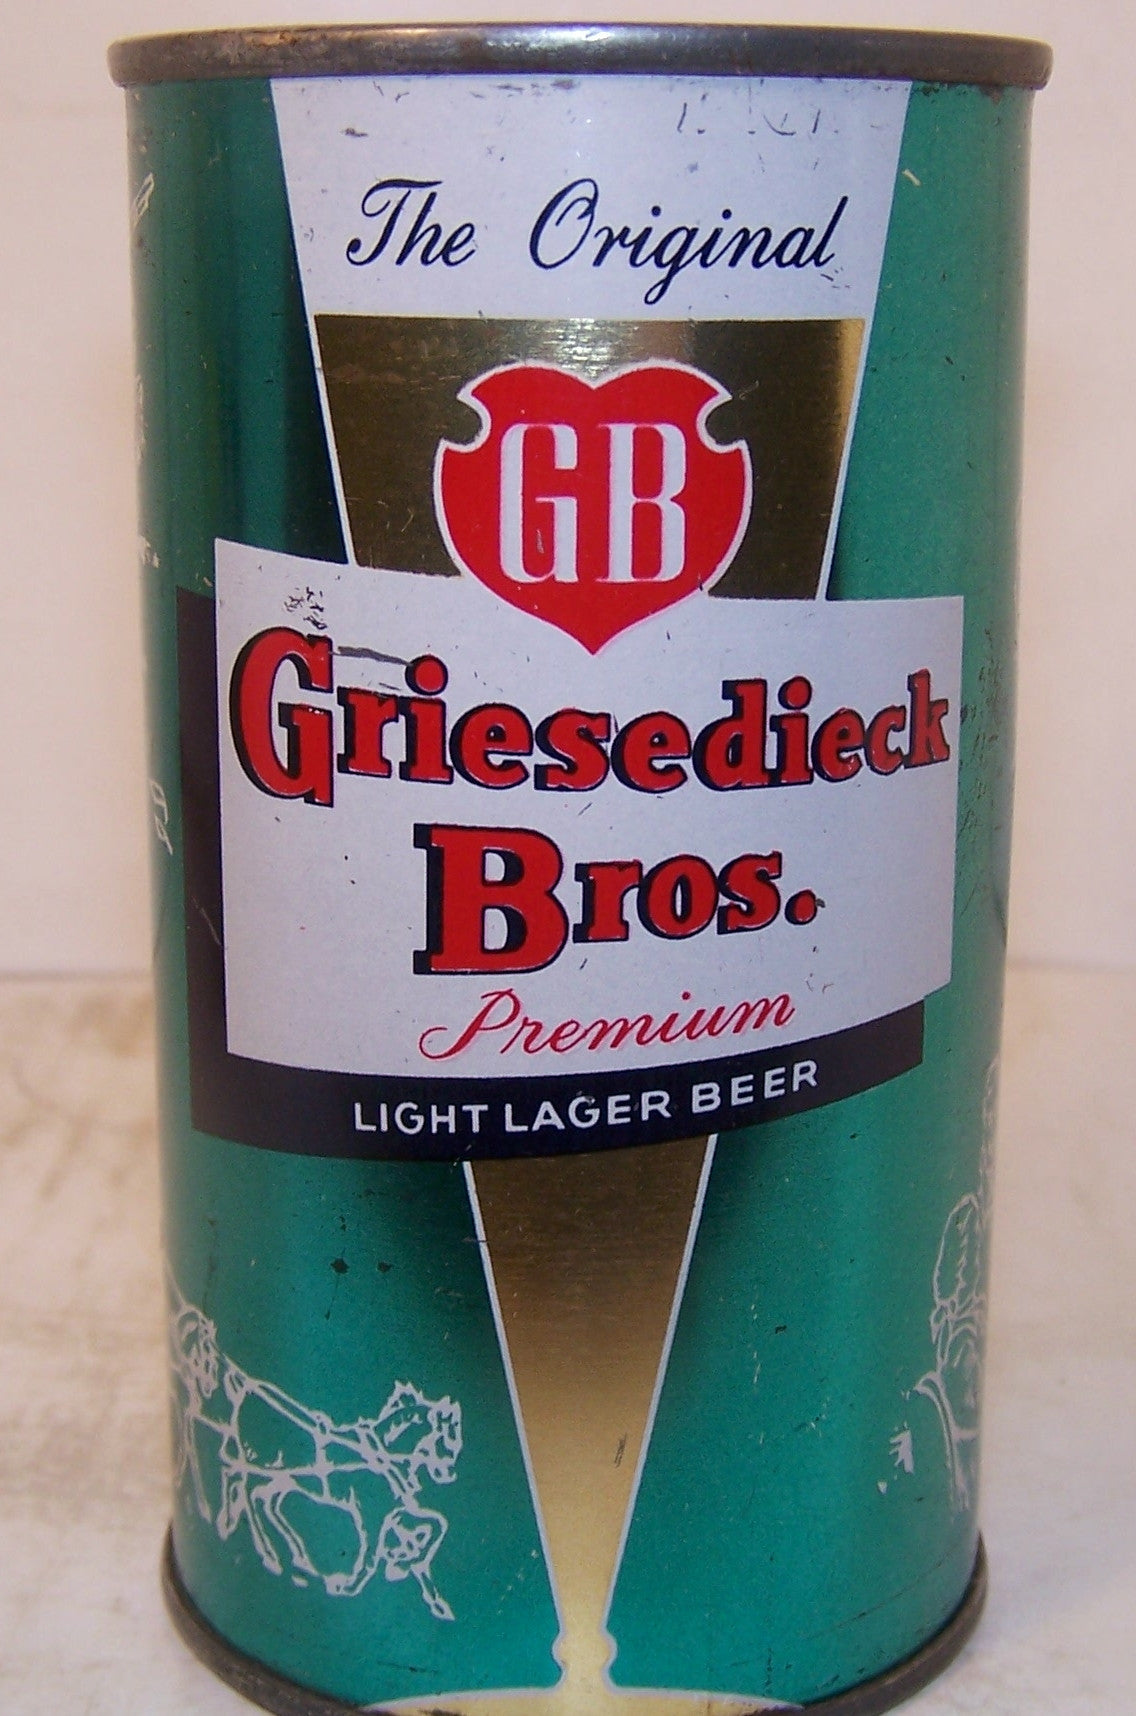 Griesedieck Bros. Premium Beer, USBC 76-18 (Green) Grade 1- Sold on 10/06/17